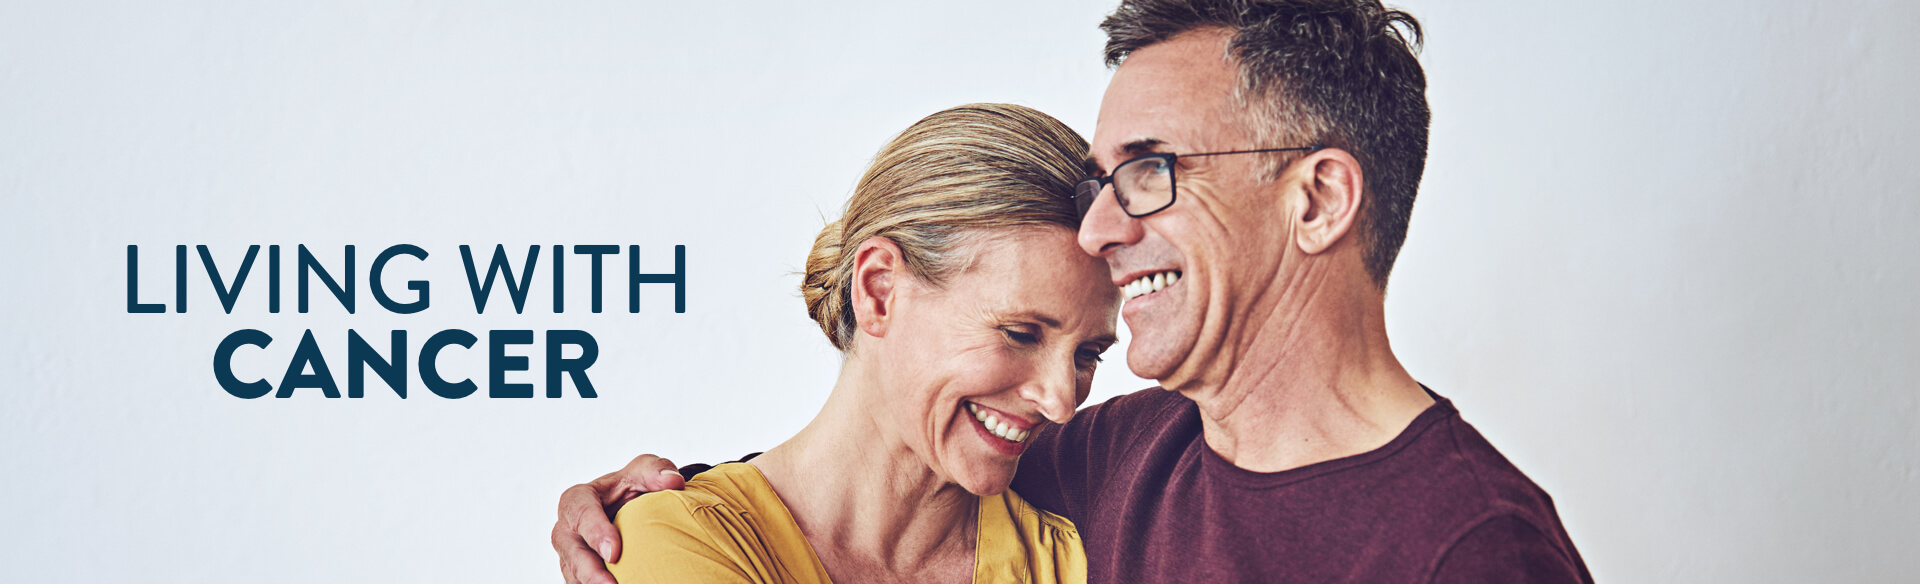 Living With Cancer banner